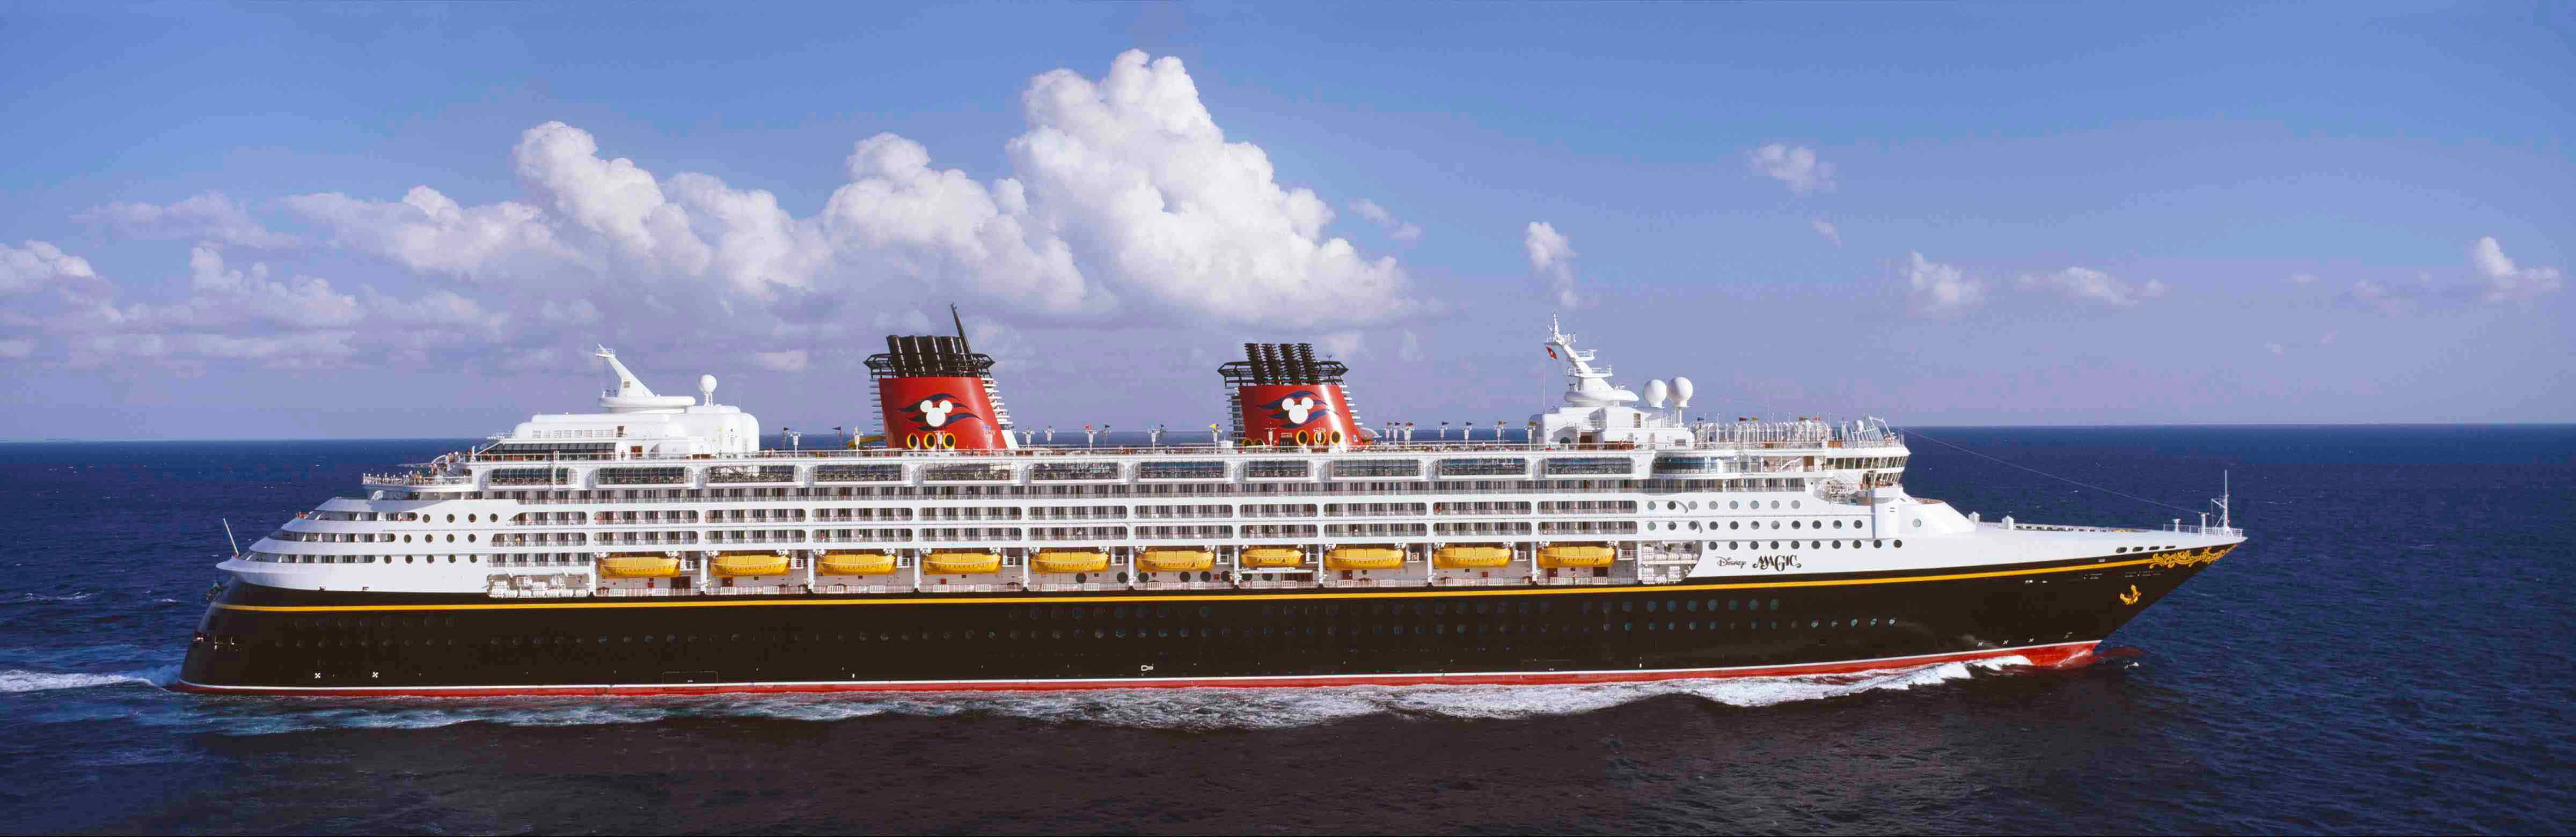 disney cruise line to sail out of new york from 2012 cruise international. Black Bedroom Furniture Sets. Home Design Ideas